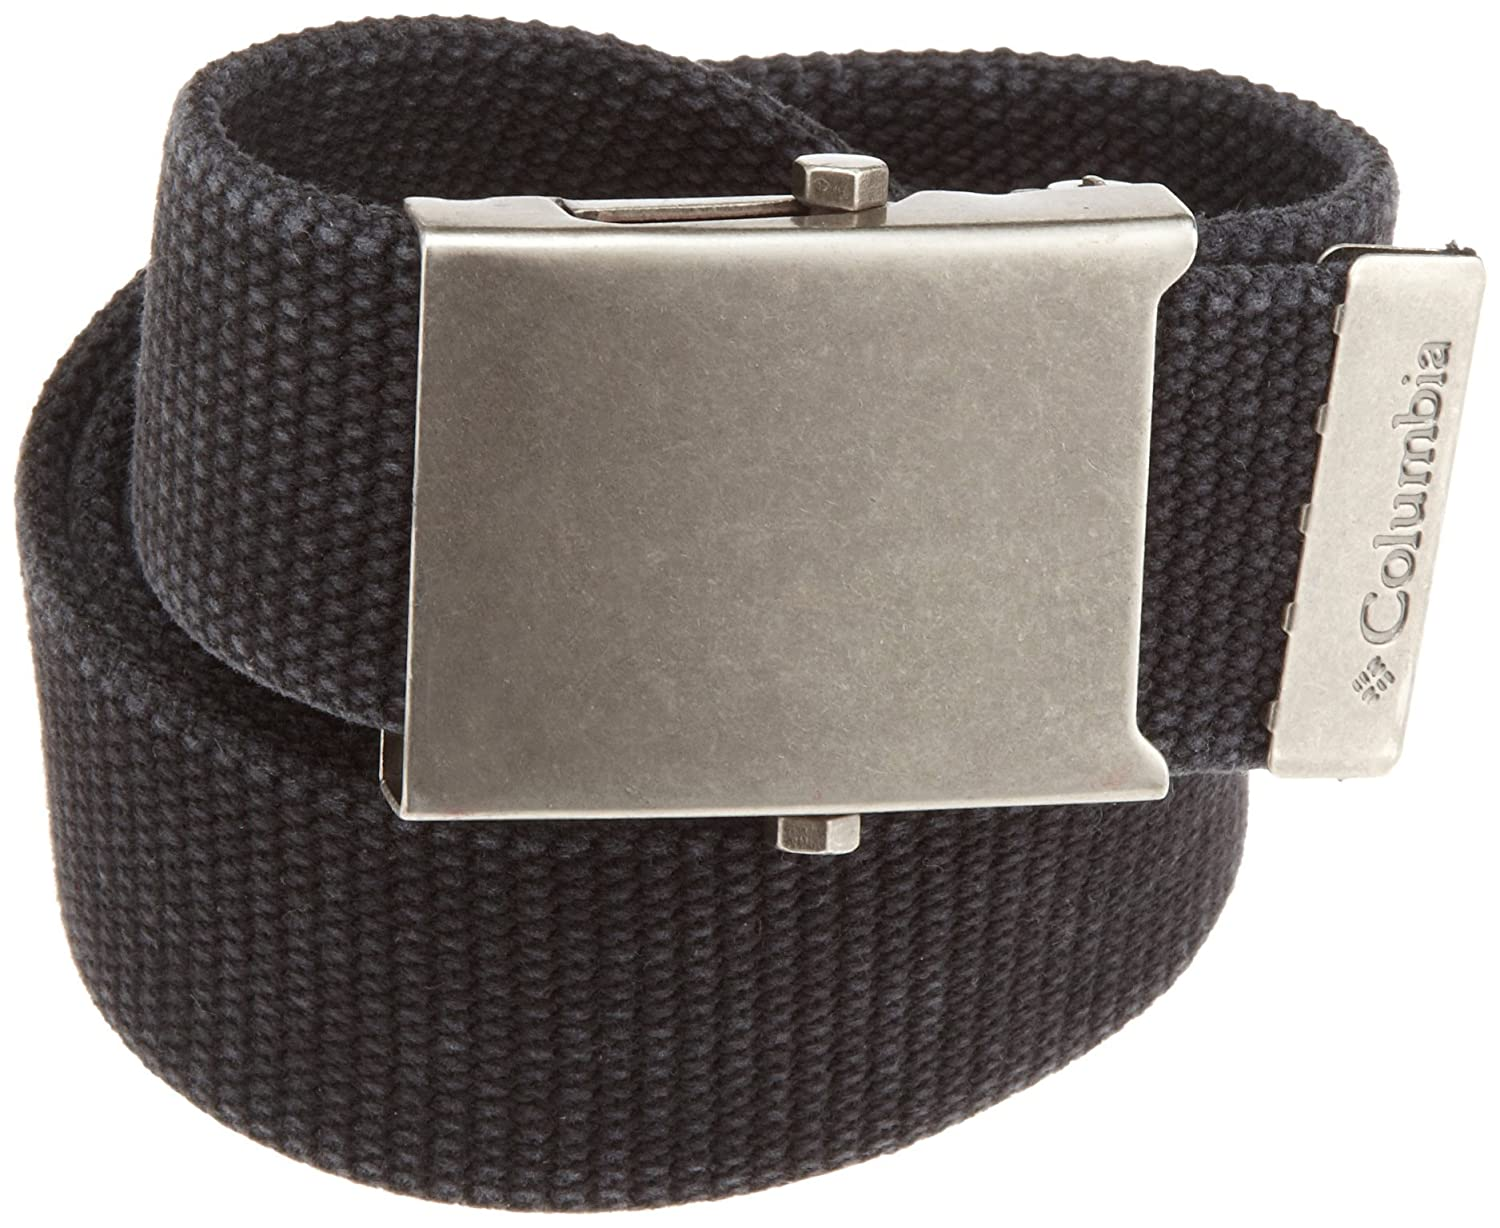 Columbia  Men's Military Style Belt